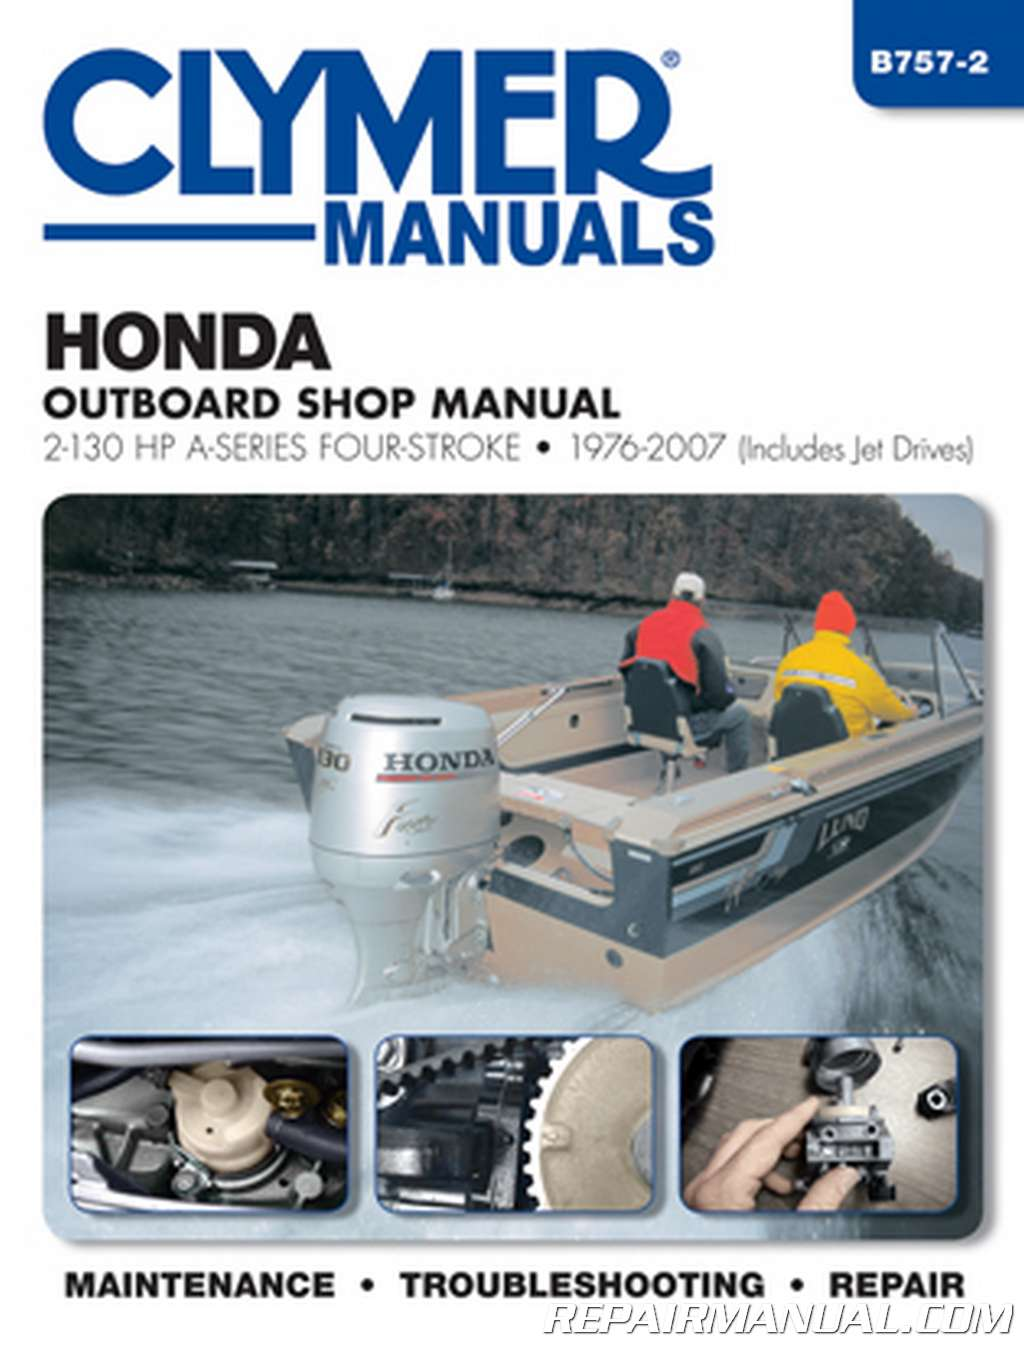 1976-2007 Honda 2-130 HP A-Series Four-Stroke (includes Jet Drives) Clymer  Outboard Shop Manual